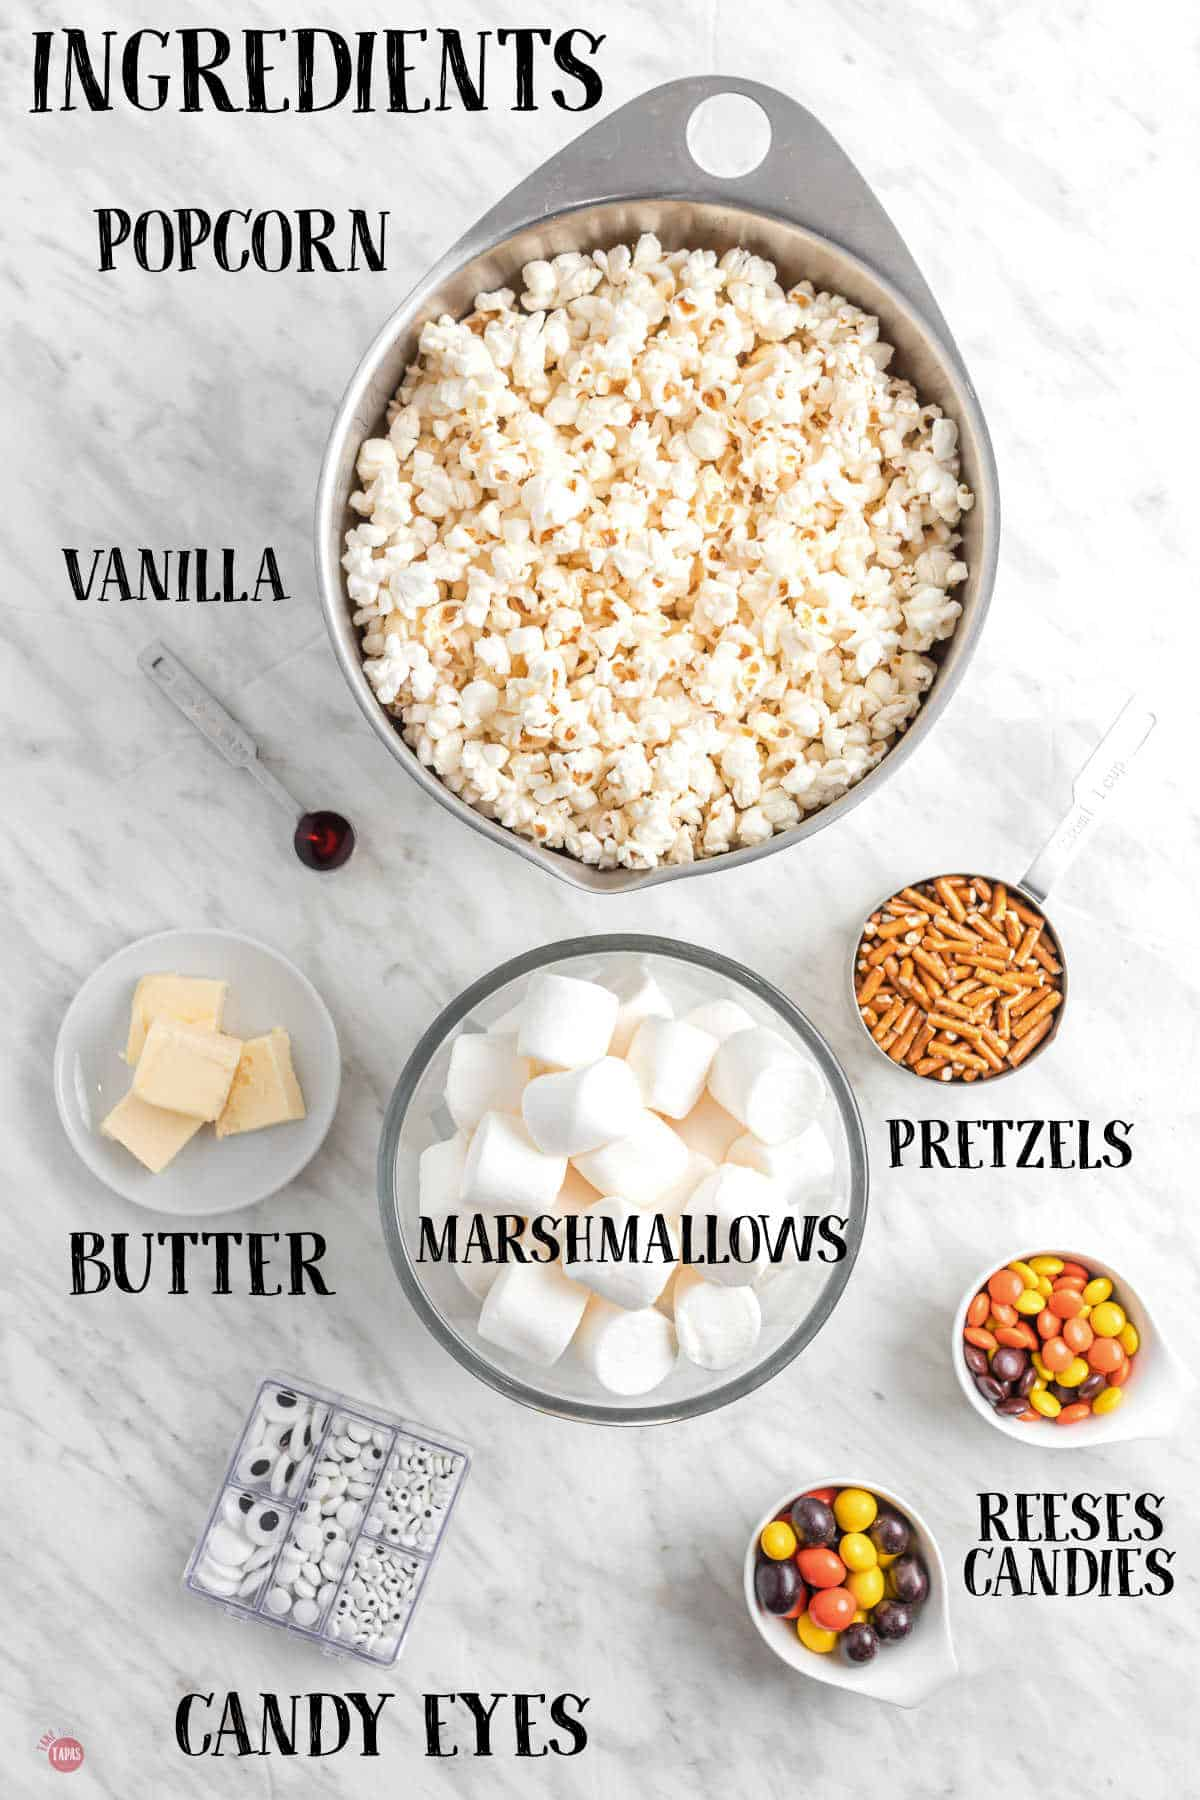 labeled picture of popcorn ball ingredients